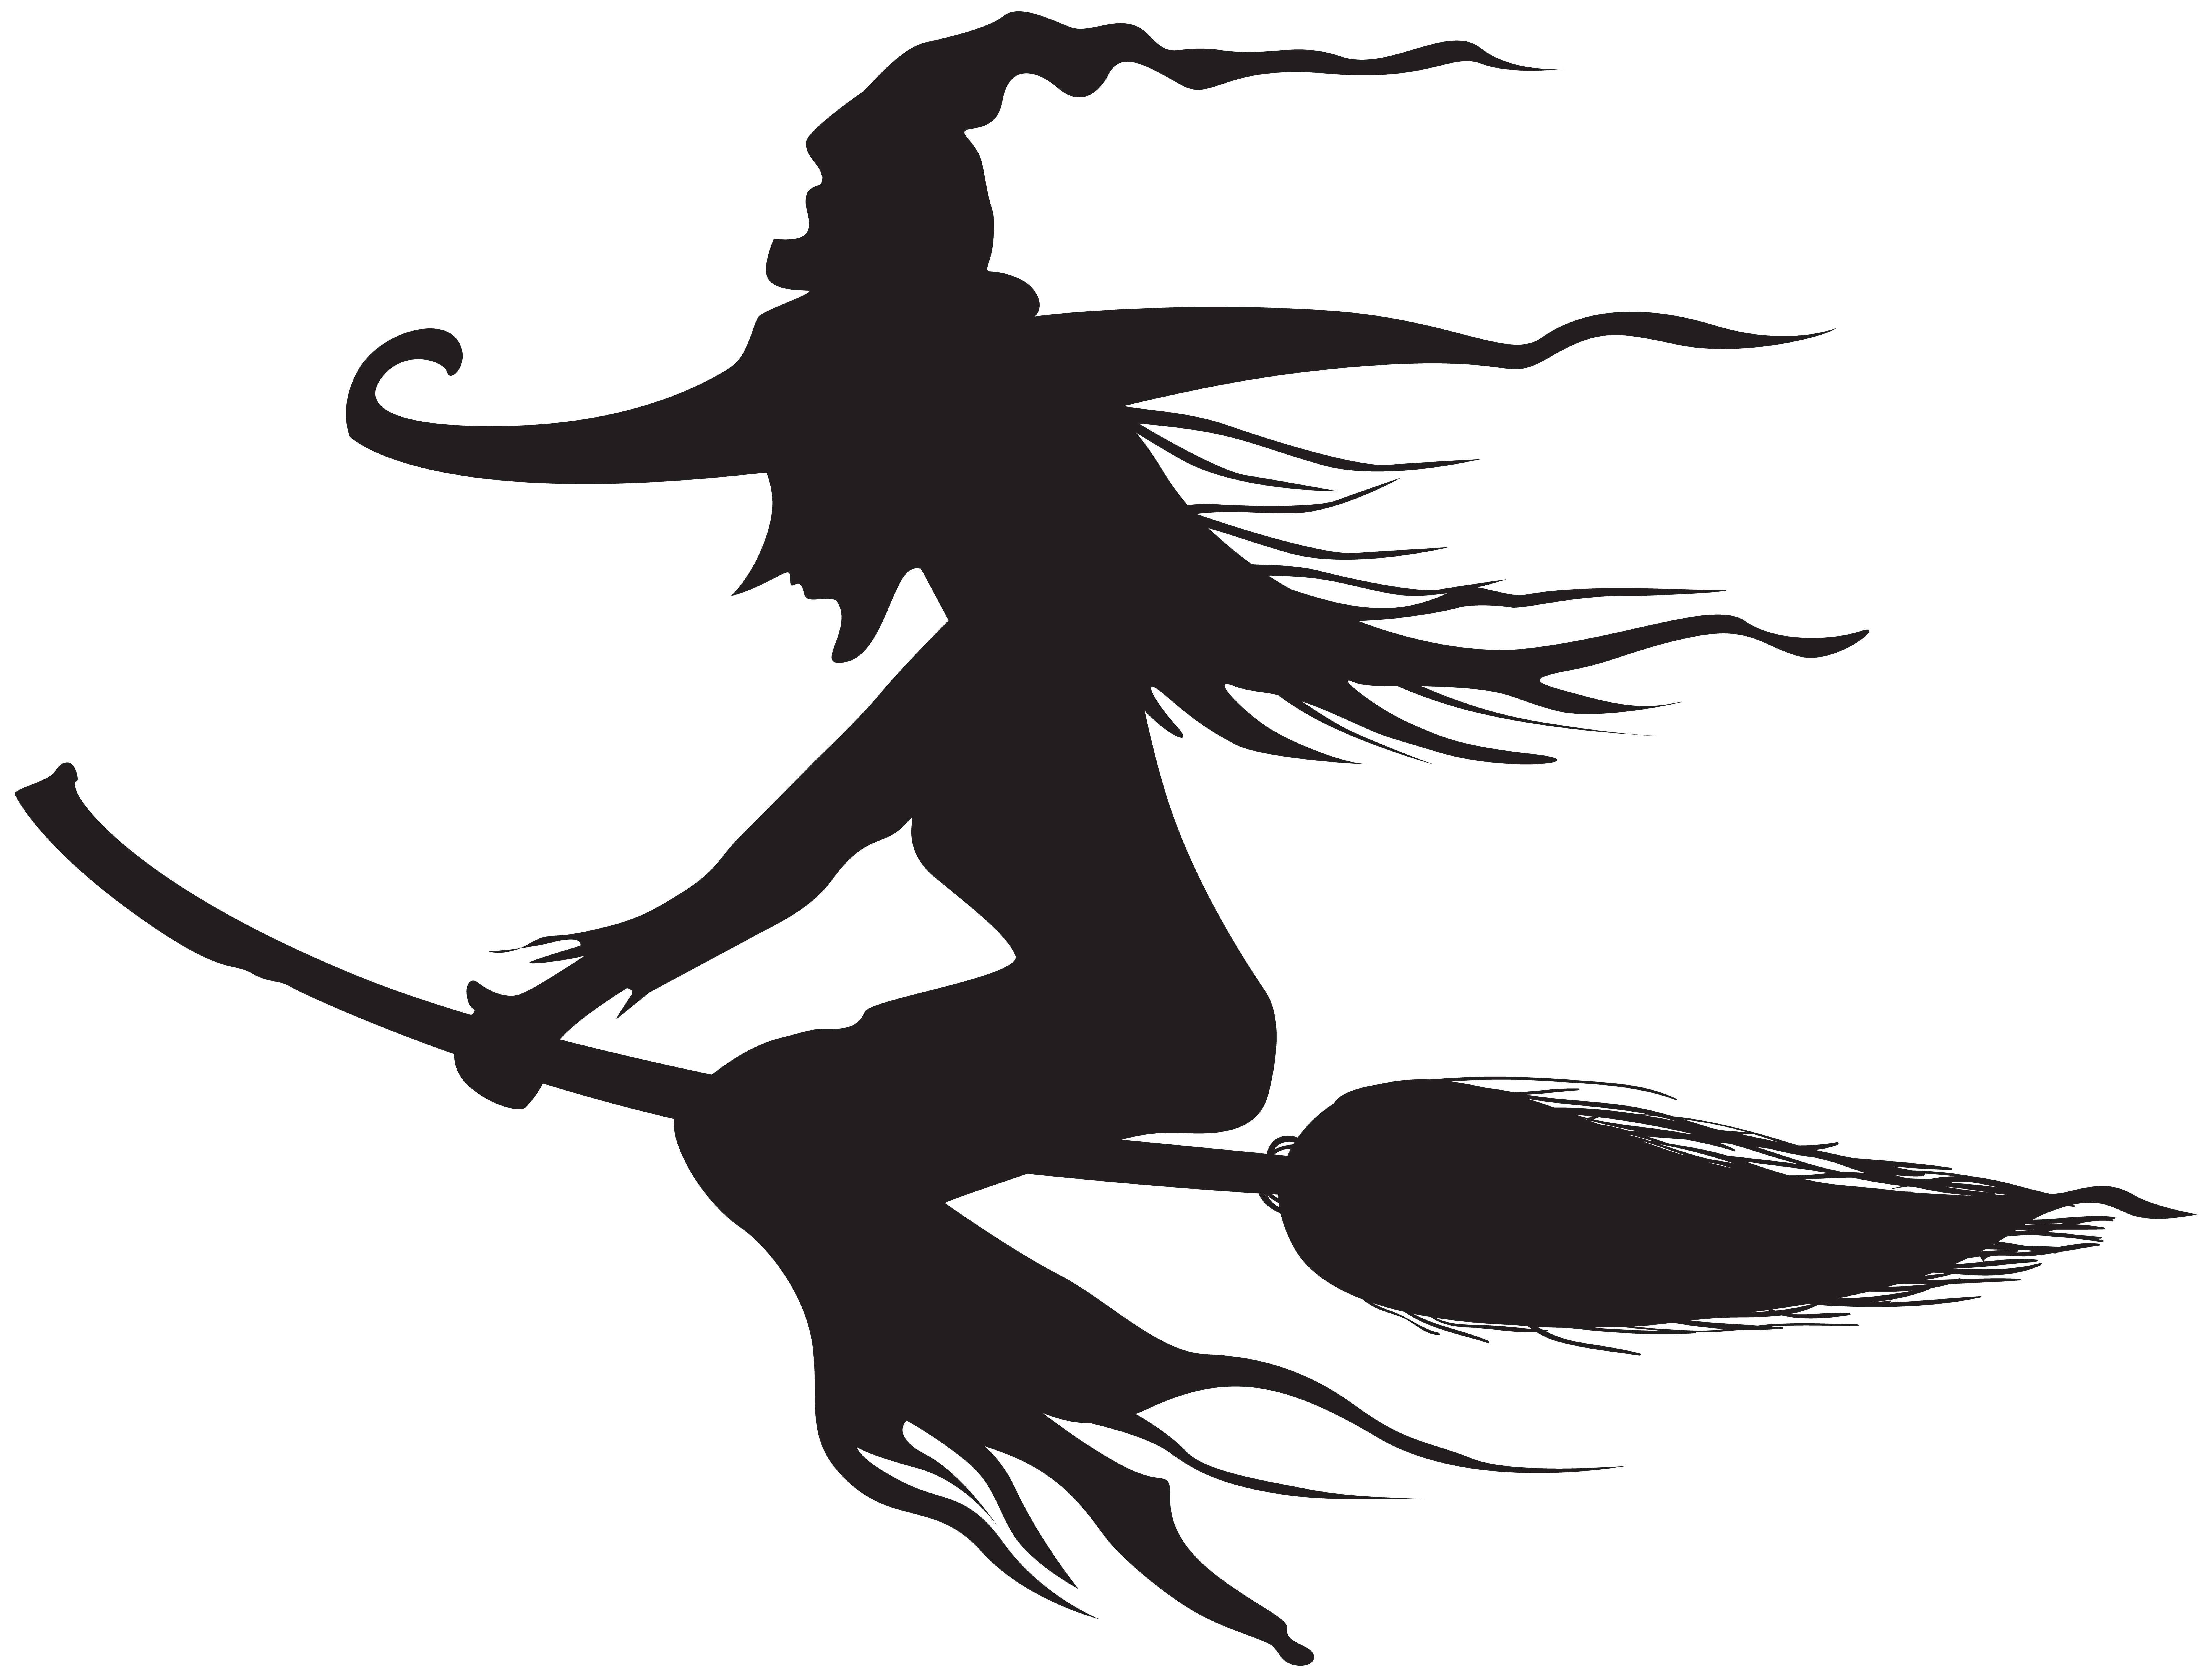 Silhouette png clip art. Clipart halloween witch